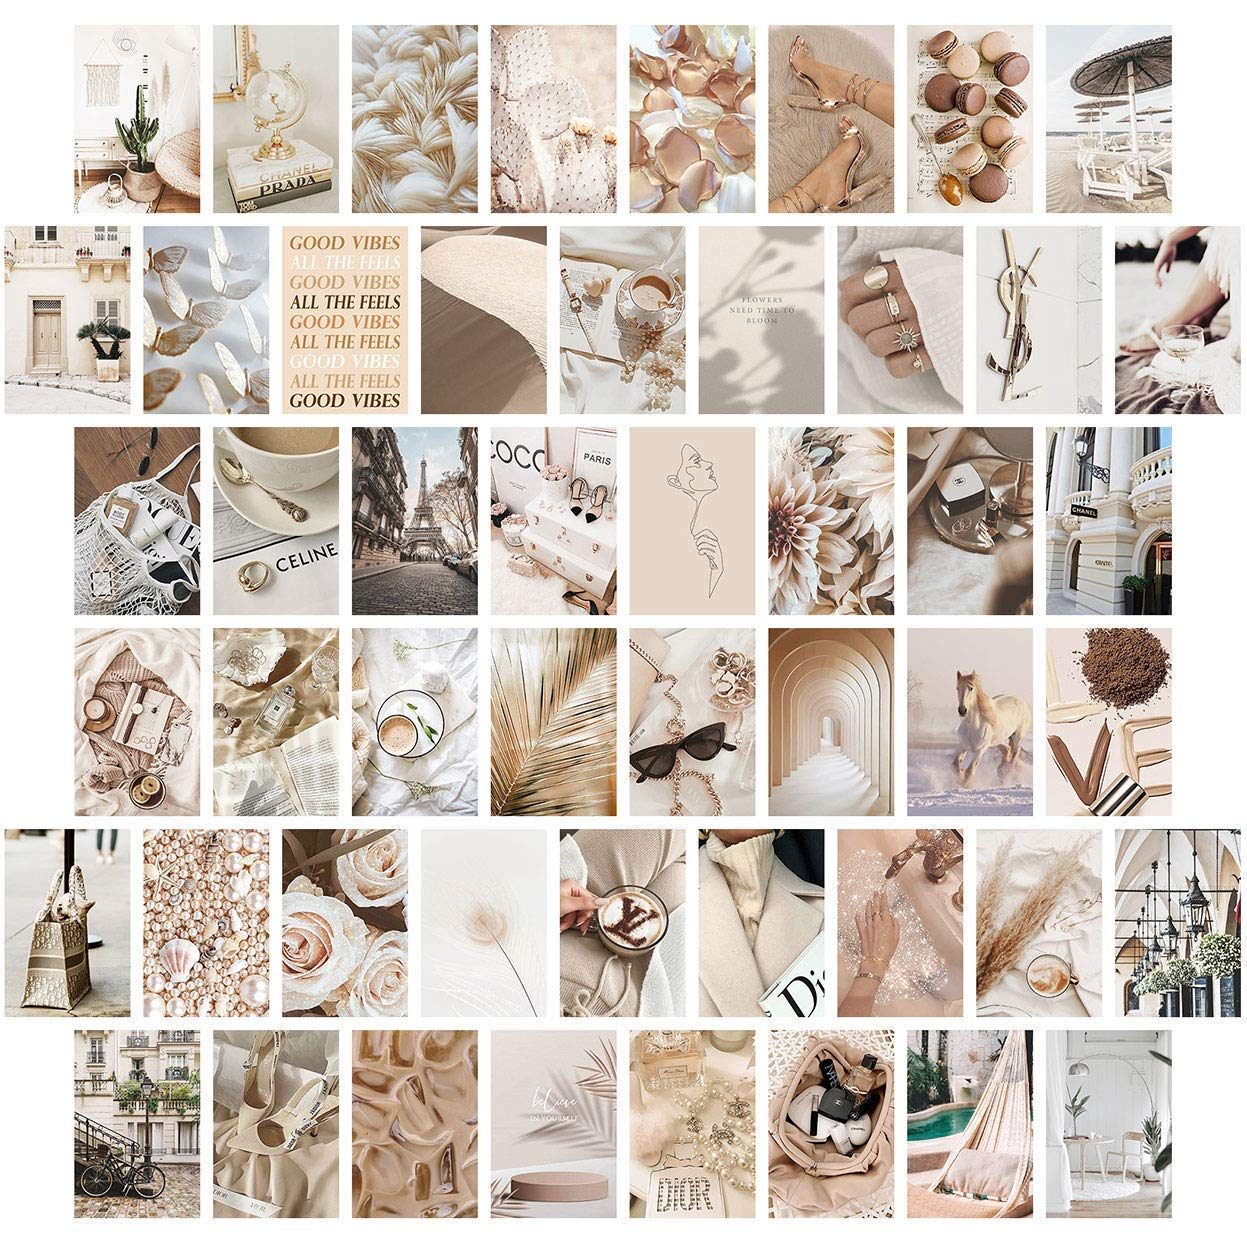 Neutral Wall Collage Kit Aesthetic Pictures, Aesthetic Room Decor, Bedroom Decor for Teen Girls, Wall Collage Kit, VSCO Room Decor, Photo Wall, Aesthetic Posters, Collage Kit (50 Set 4x6 inch)